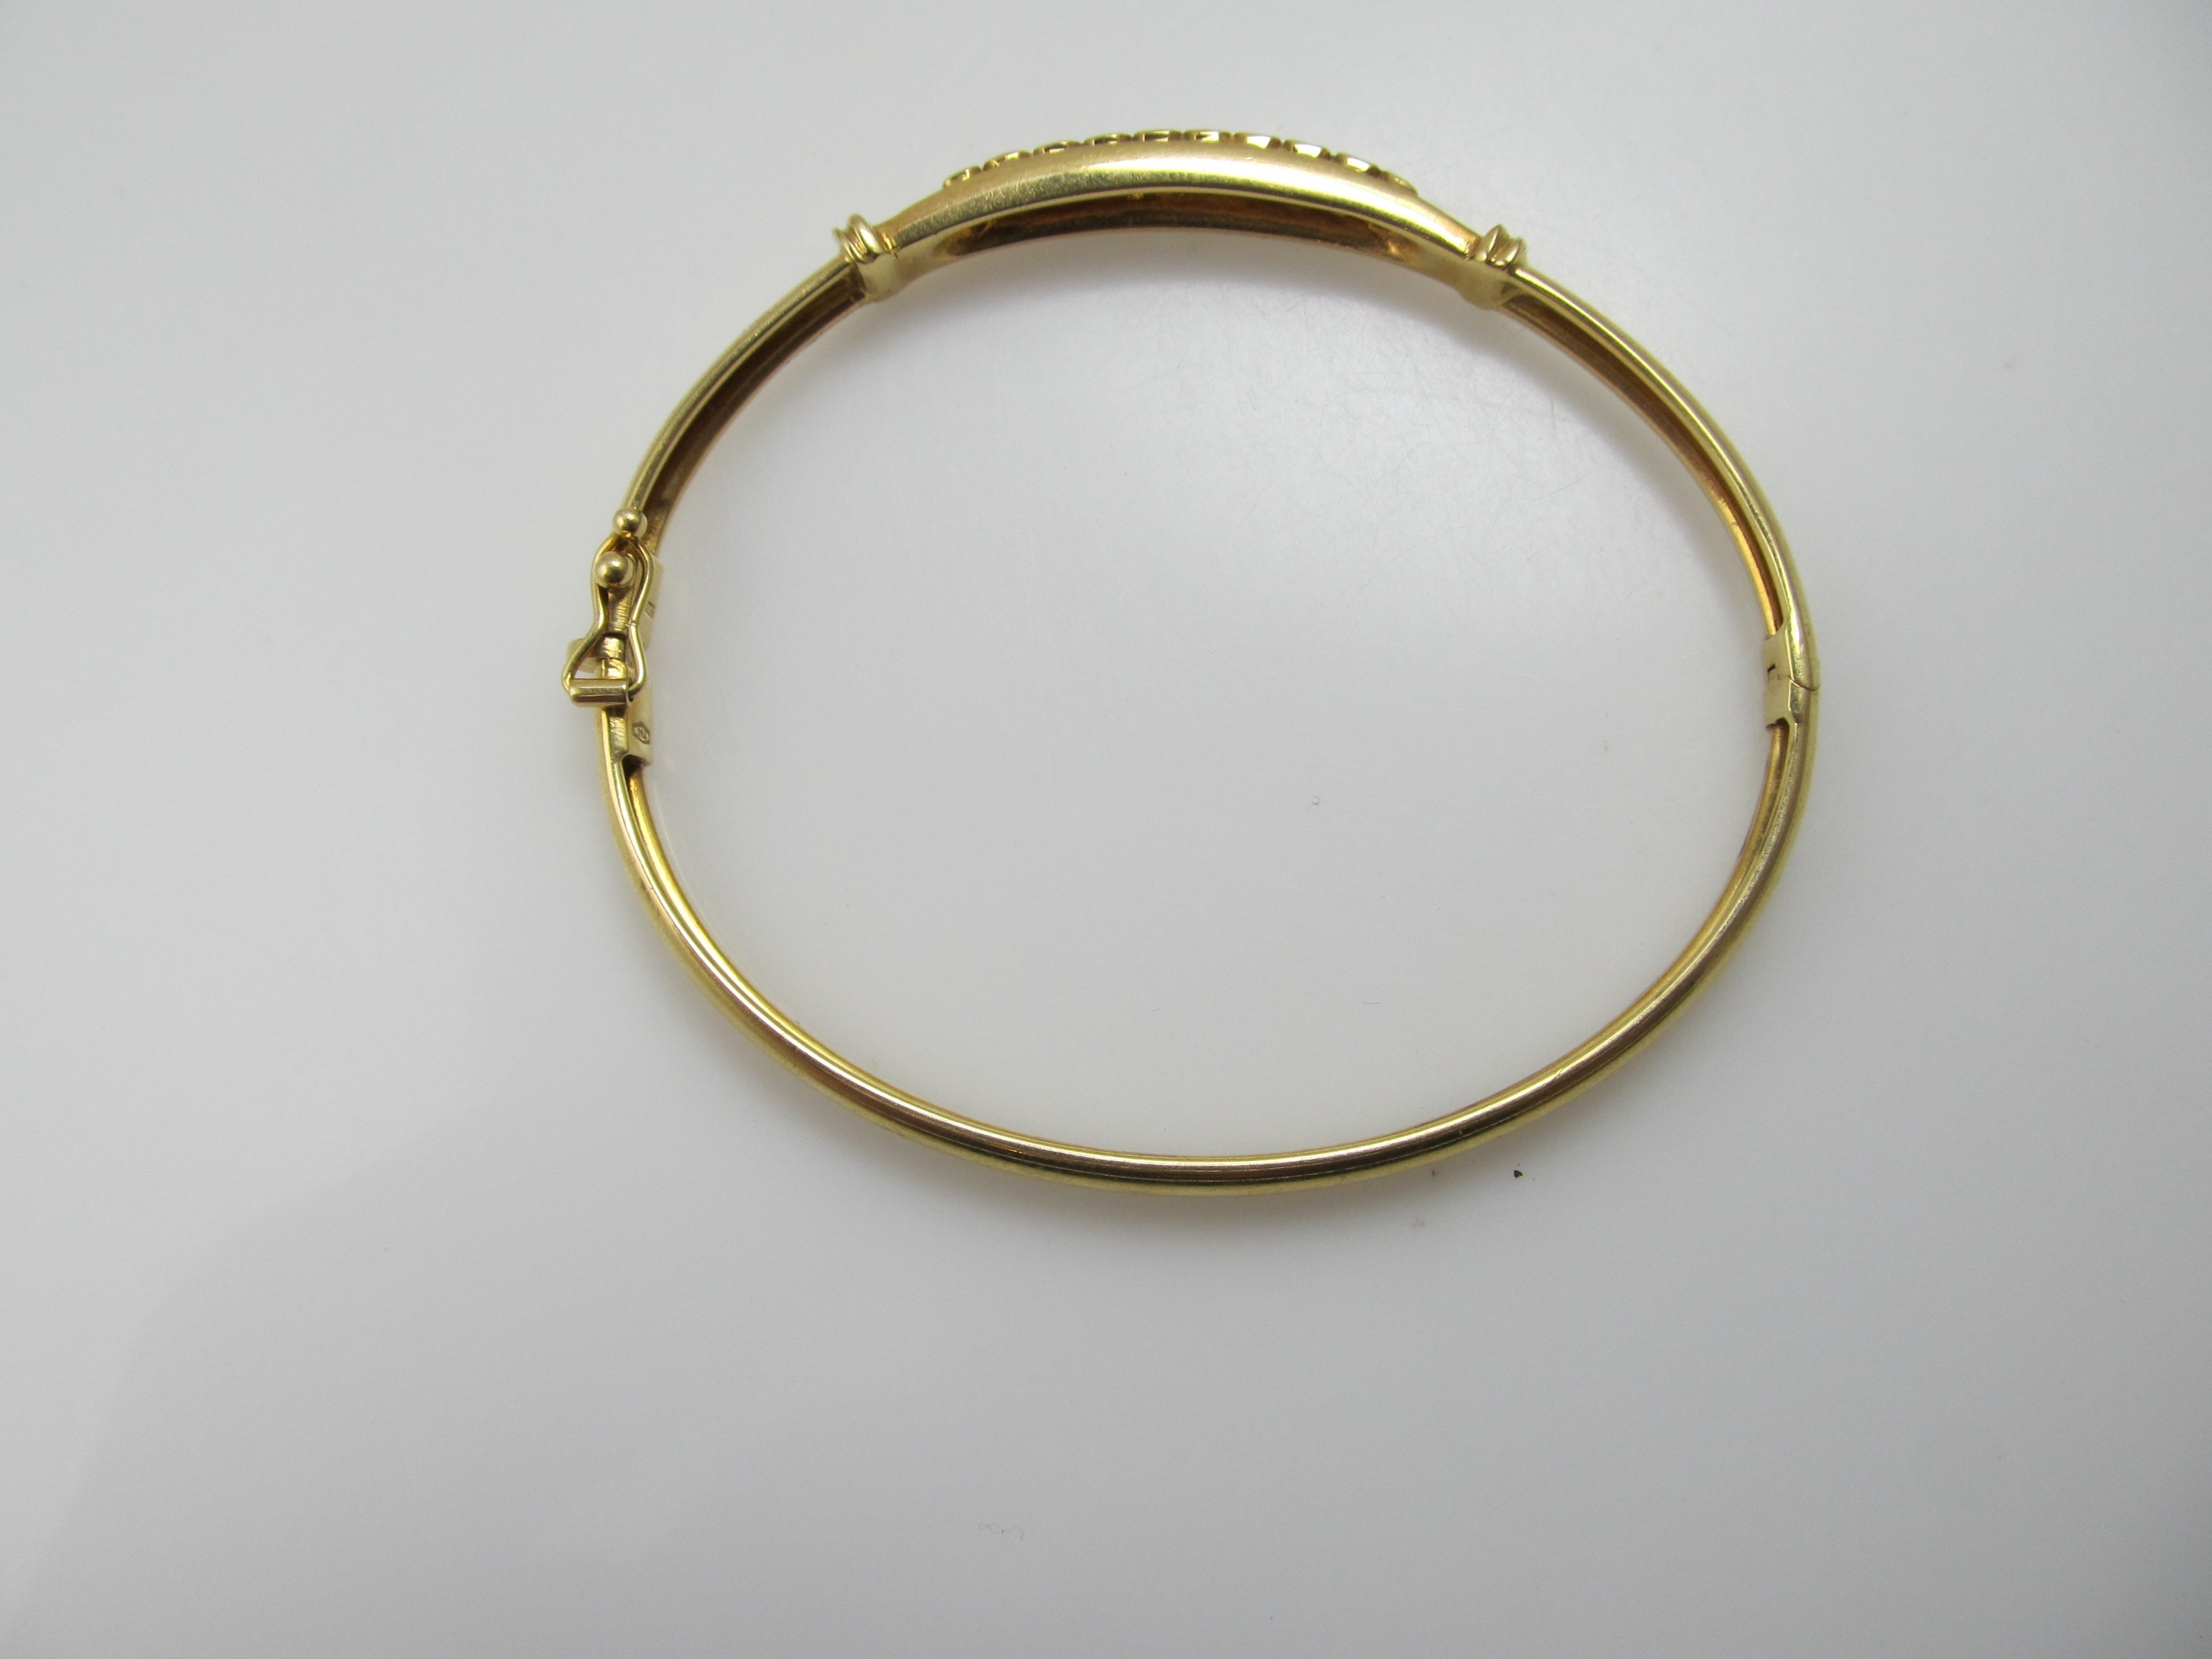 bangle yellow with bangles milano bracelet gold shop llumins gioielli maschio ice diamond solitaire circles